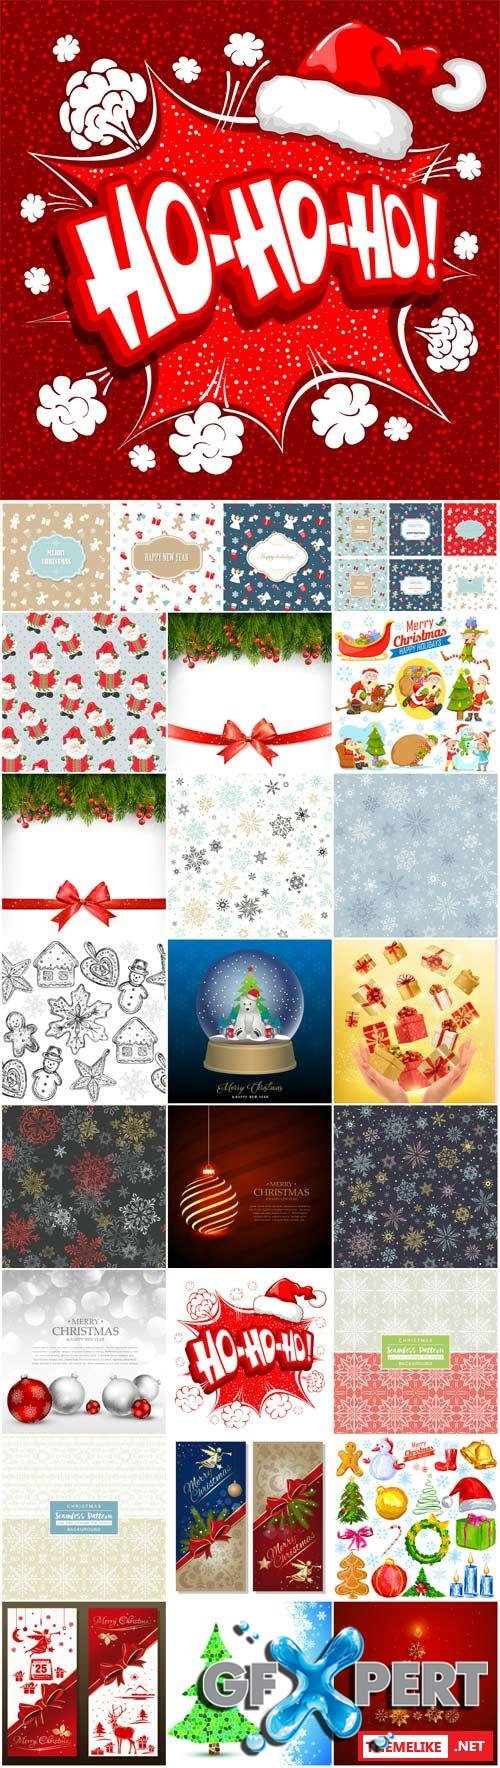 Merry Christmas and Happy New Year vector, backgrounds and textures